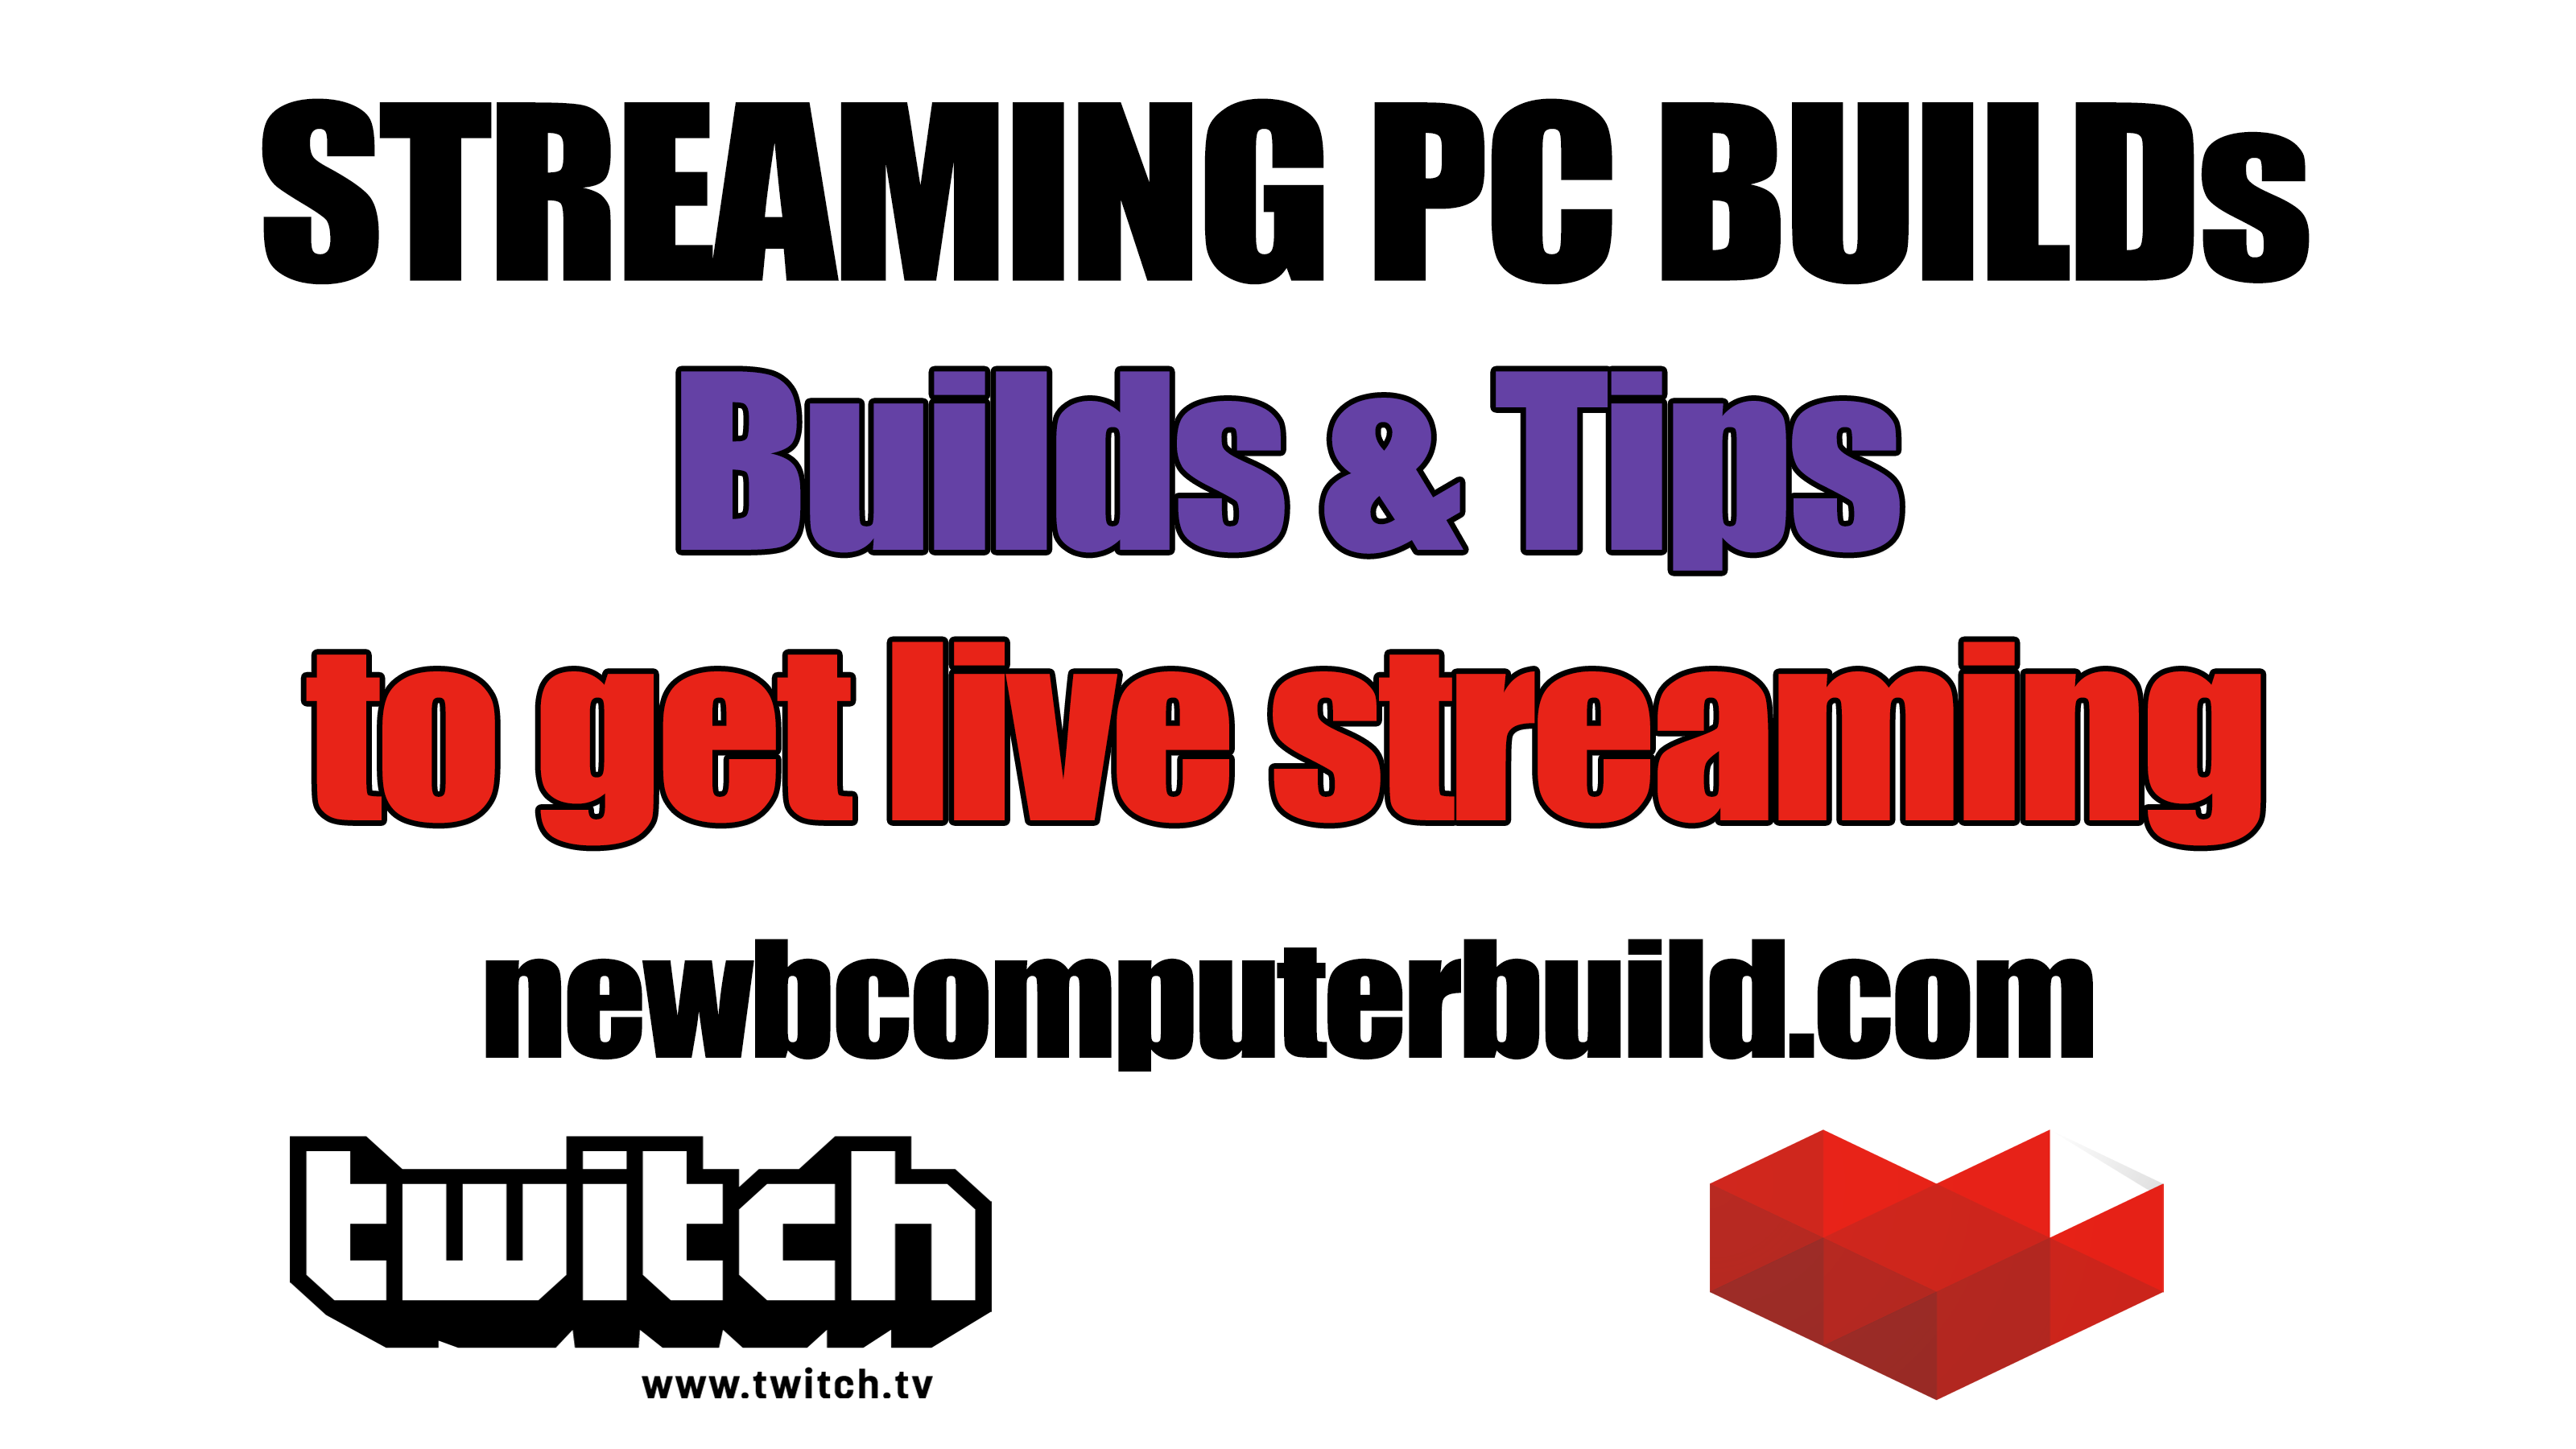 Streaming PC Build for Twitch or Youtube Gaming